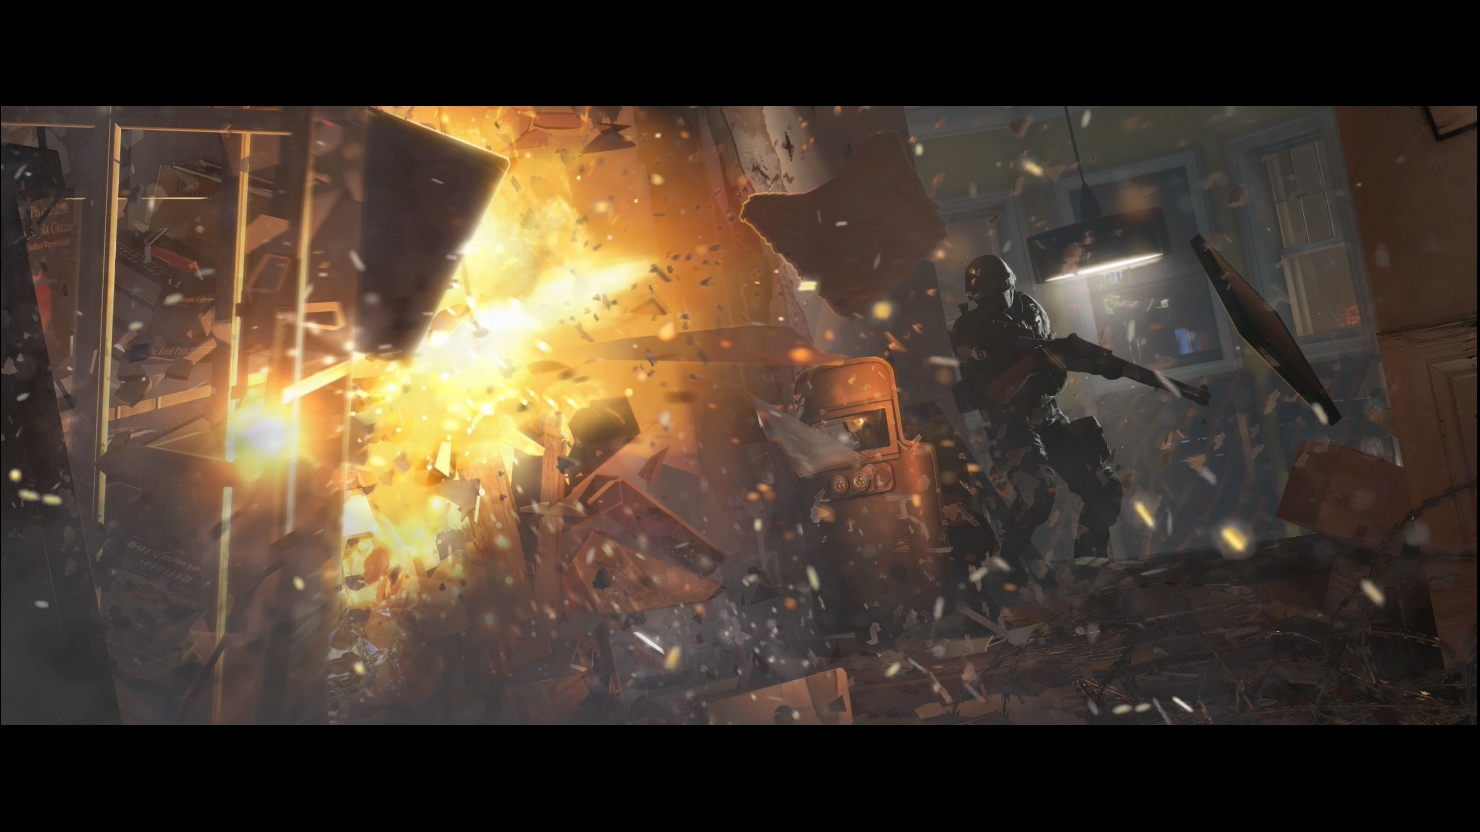 Rainbow Six Siege 4k Video Live Wallpaper By Ice Wind Wolf On